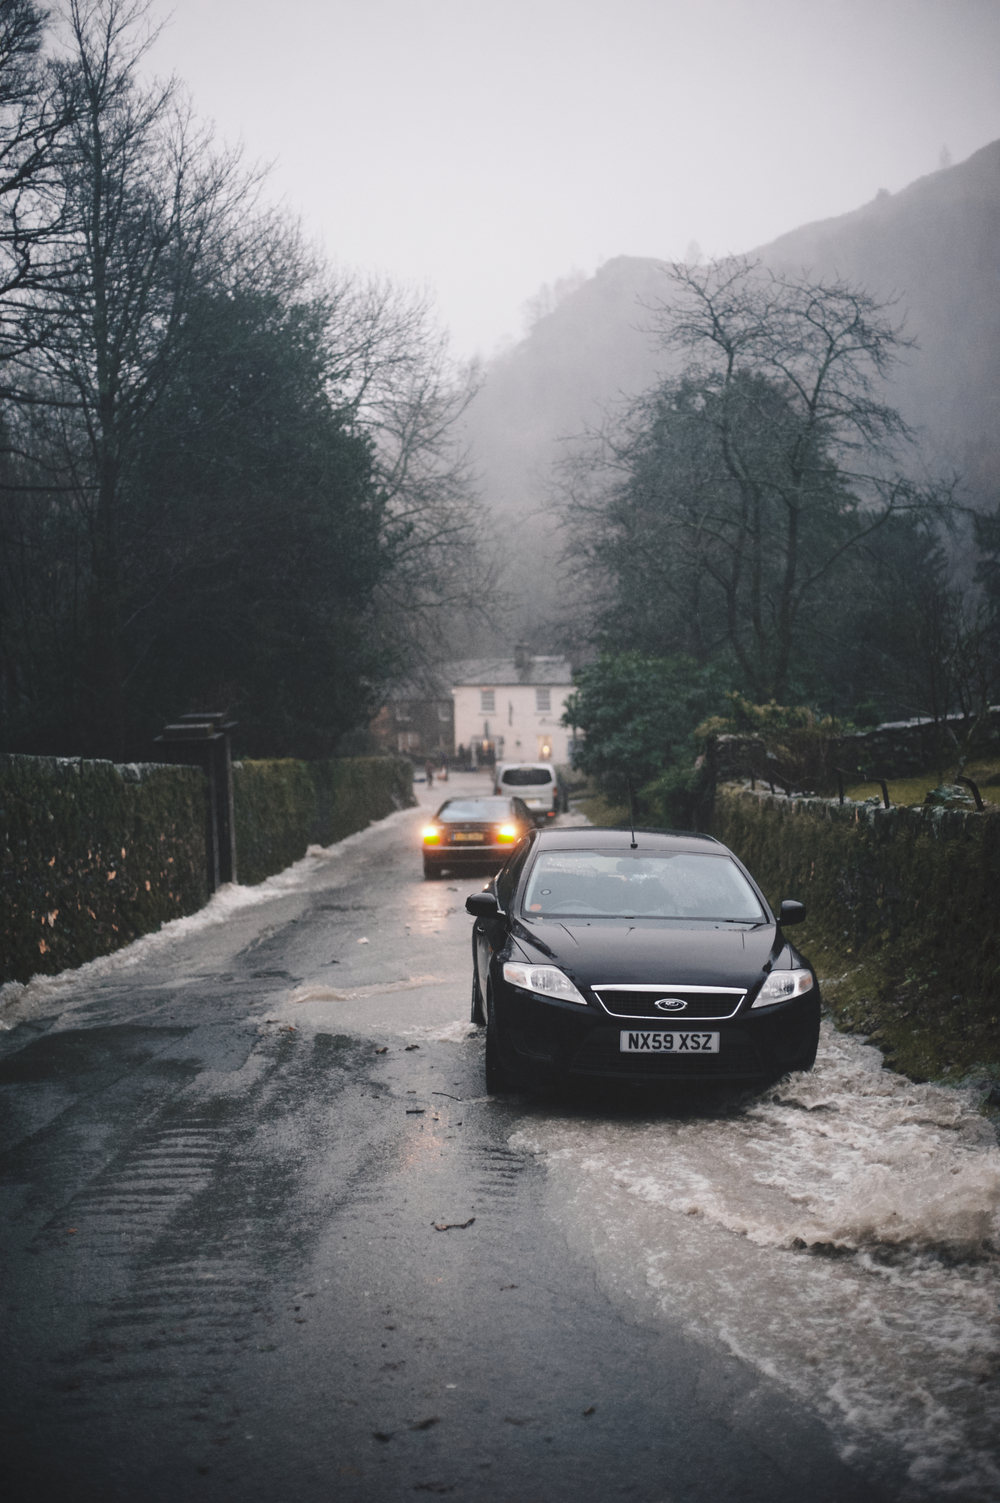 wedding cars in floods roads rydal hall lake district